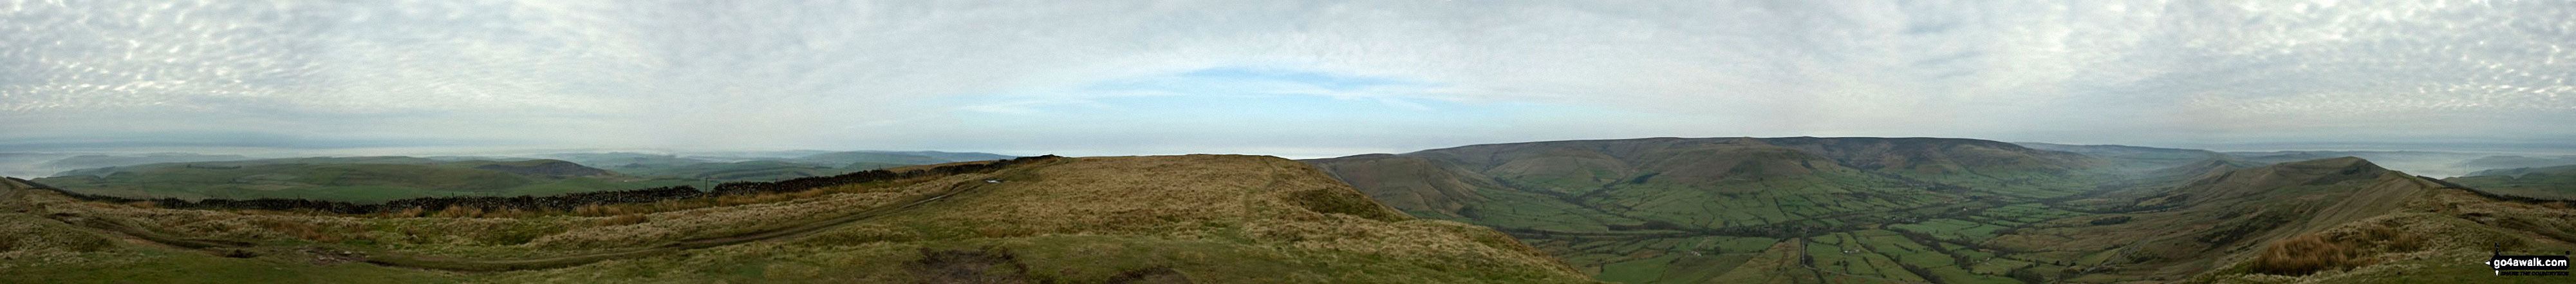 The High Peak District, Eldon Hill, Chapel-en-le-Frith, Rushup Edge, Kinder Scout, The Vale of Edale, Edale, Mam Tor, Hollins Cross, Back Tor (Hollins Cross) and Lose Hill (Ward's Piece) from Lord's Seat (Rushup Edge)